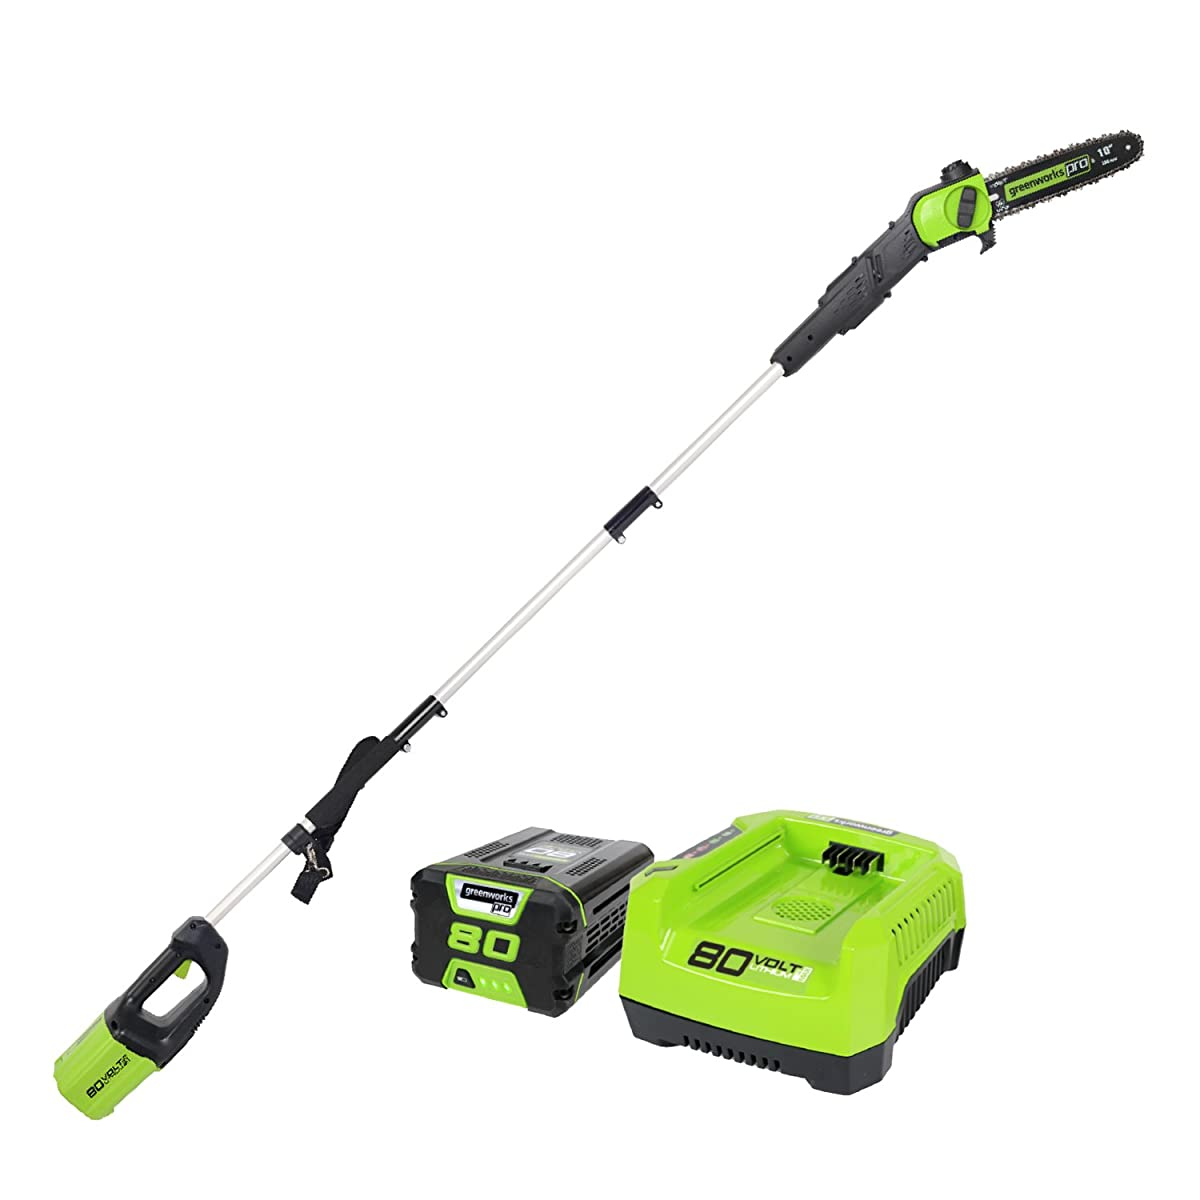 Greenworks PRO 9 80V Cordless Pole Saw, 2.0 AH Battery Included PS80L21